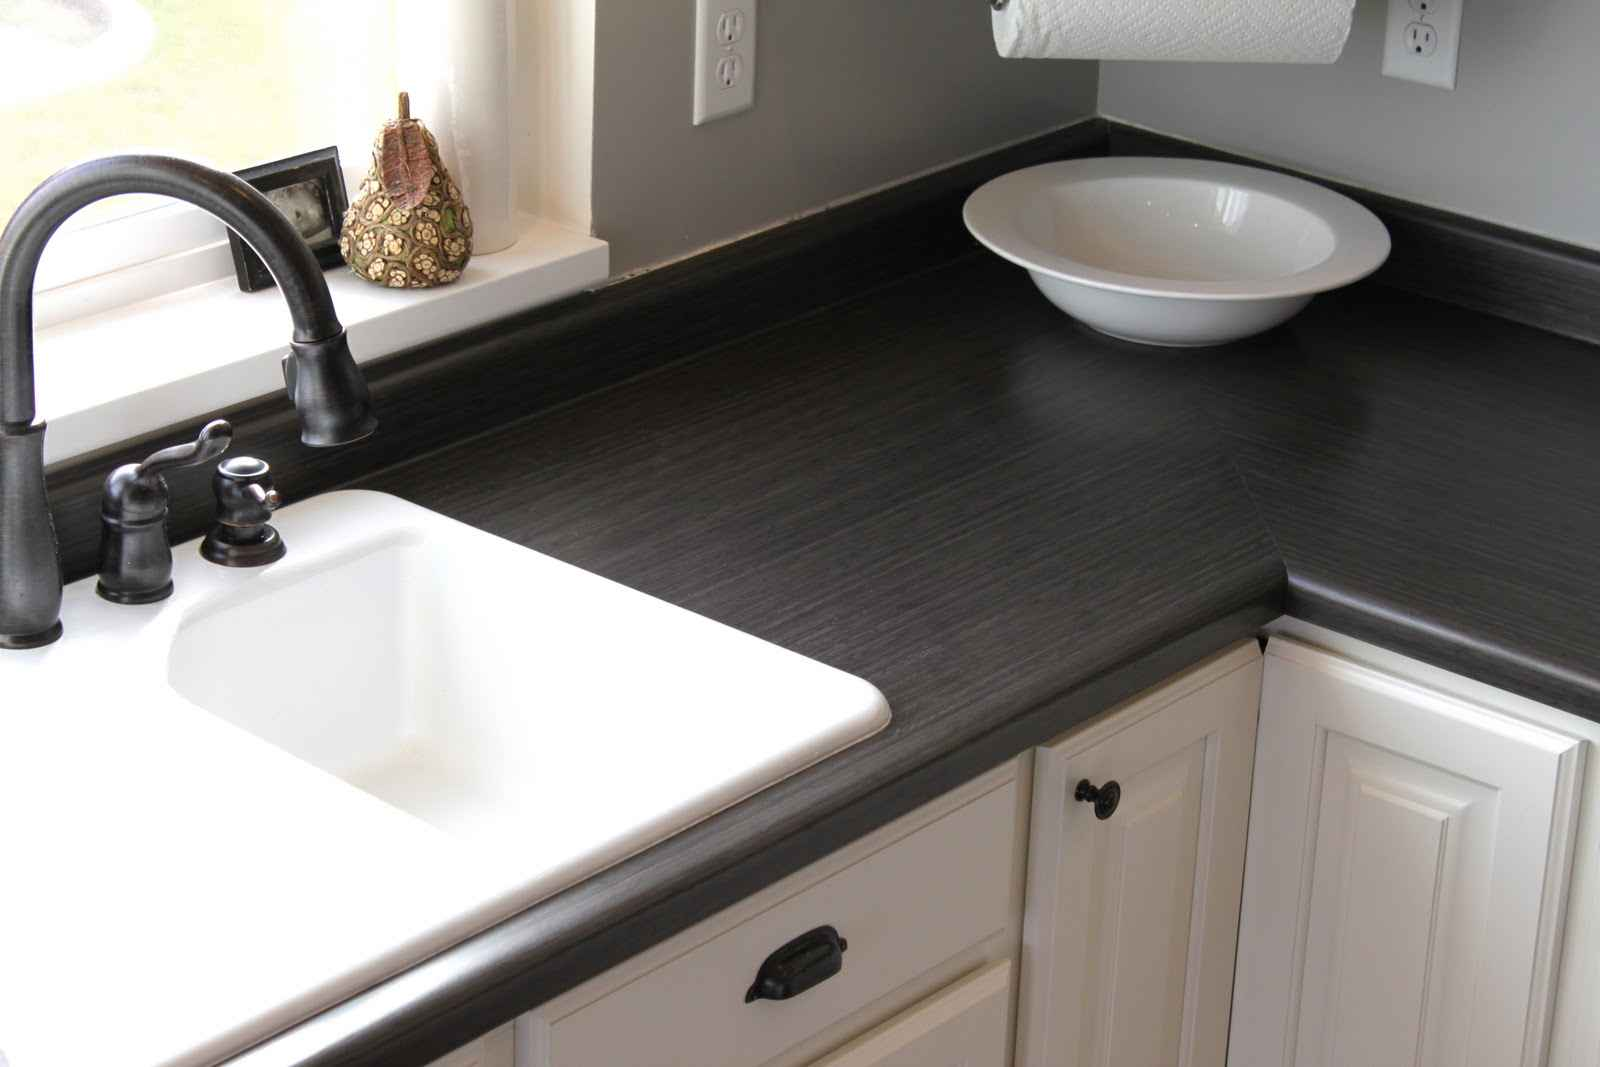 Cheap countertop options best solution to get stylish for Kitchen countertop options pictures